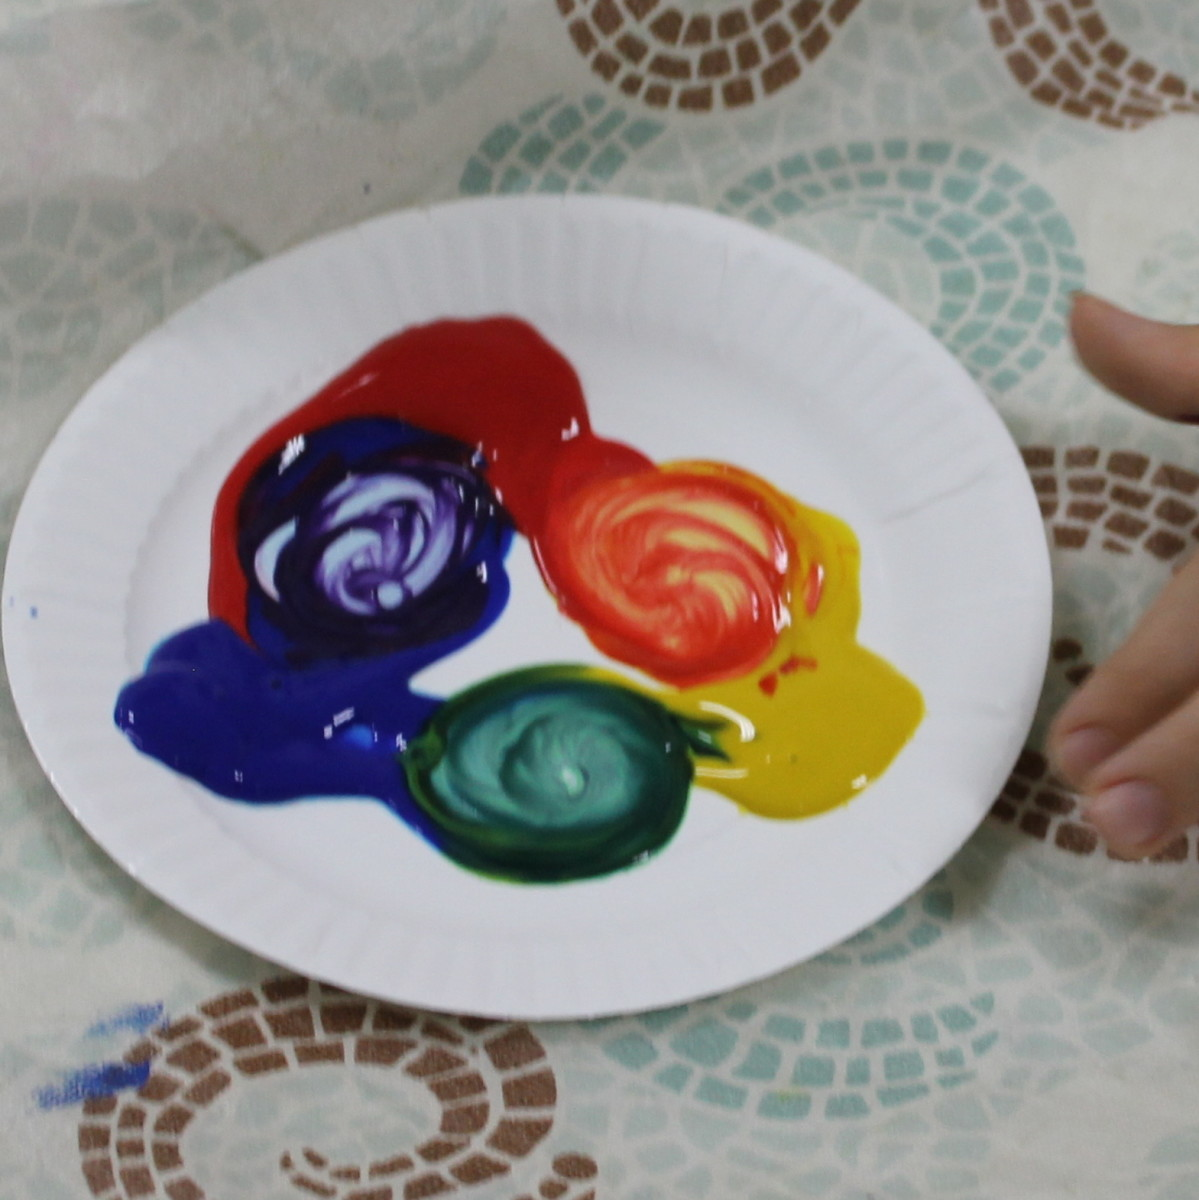 Mixing primary colors to make secondary colors